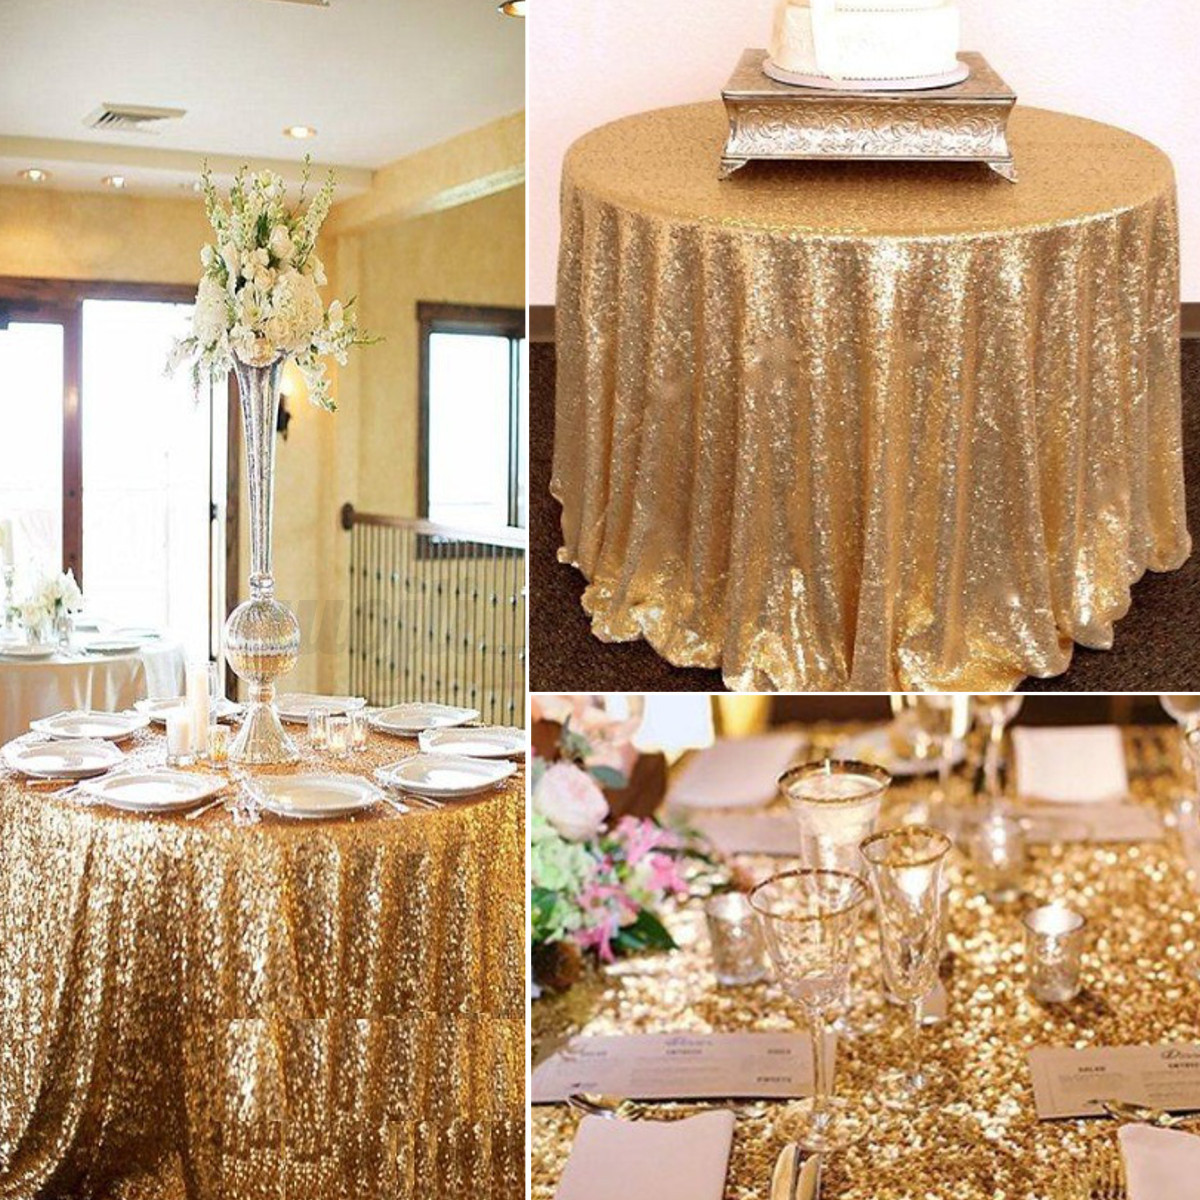 120cm round sparkly sequin banquet tablecloth for wedding event image is loading 120cm round sparkly sequin banquet tablecloth for wedding junglespirit